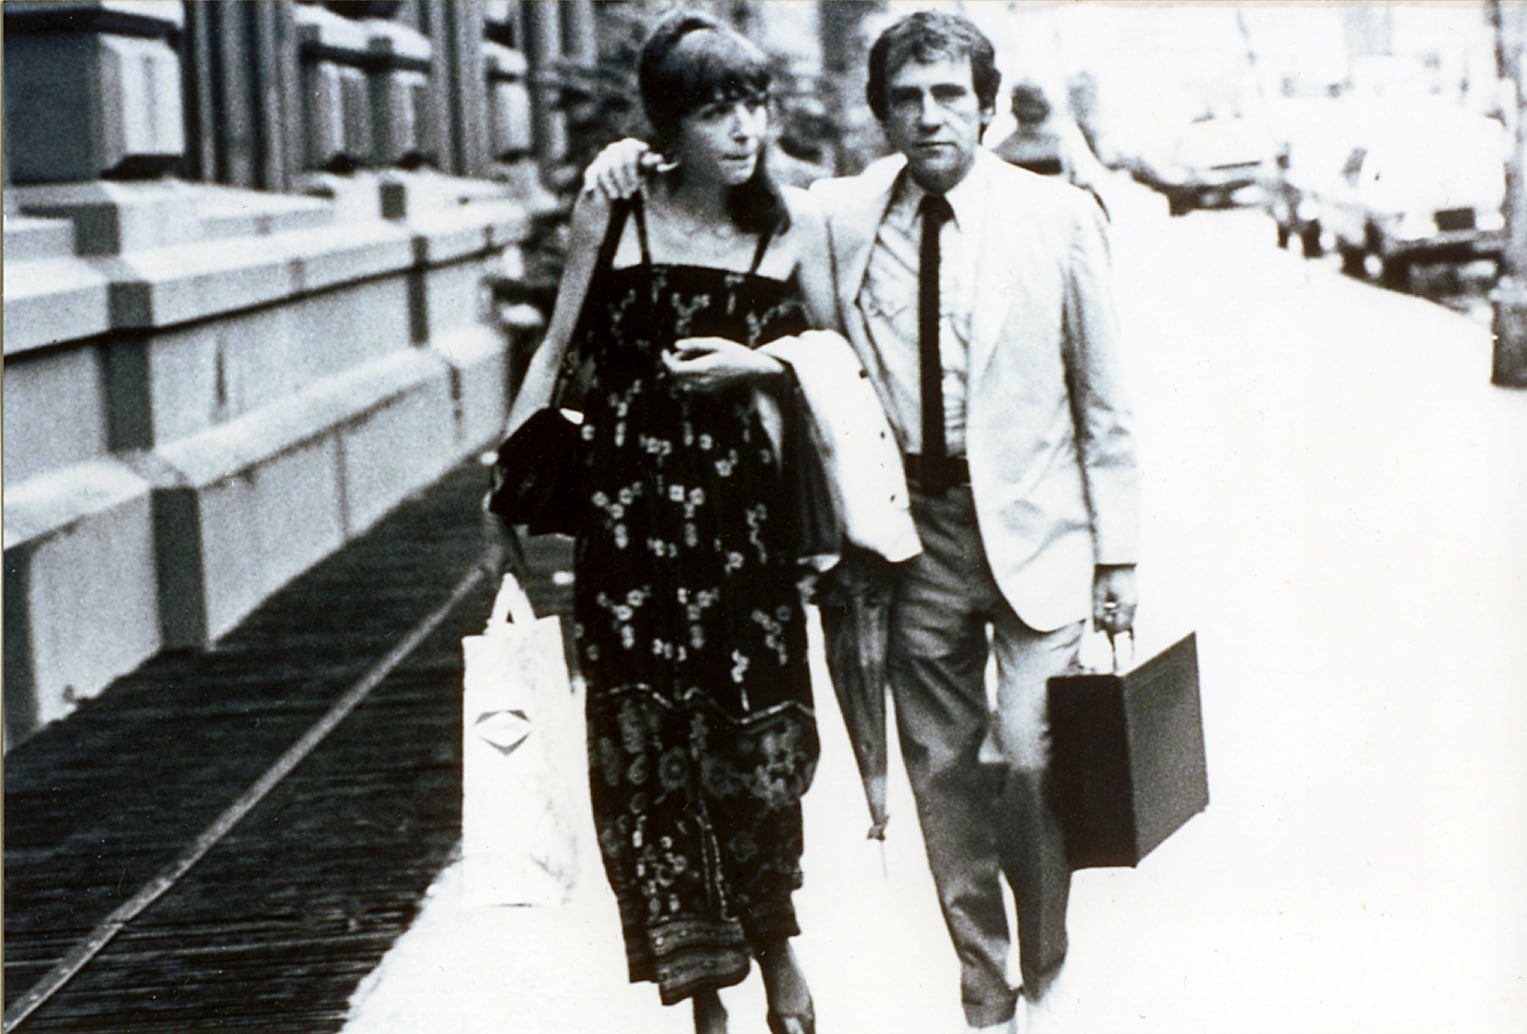 Joe and Gail walking home from Public Theater